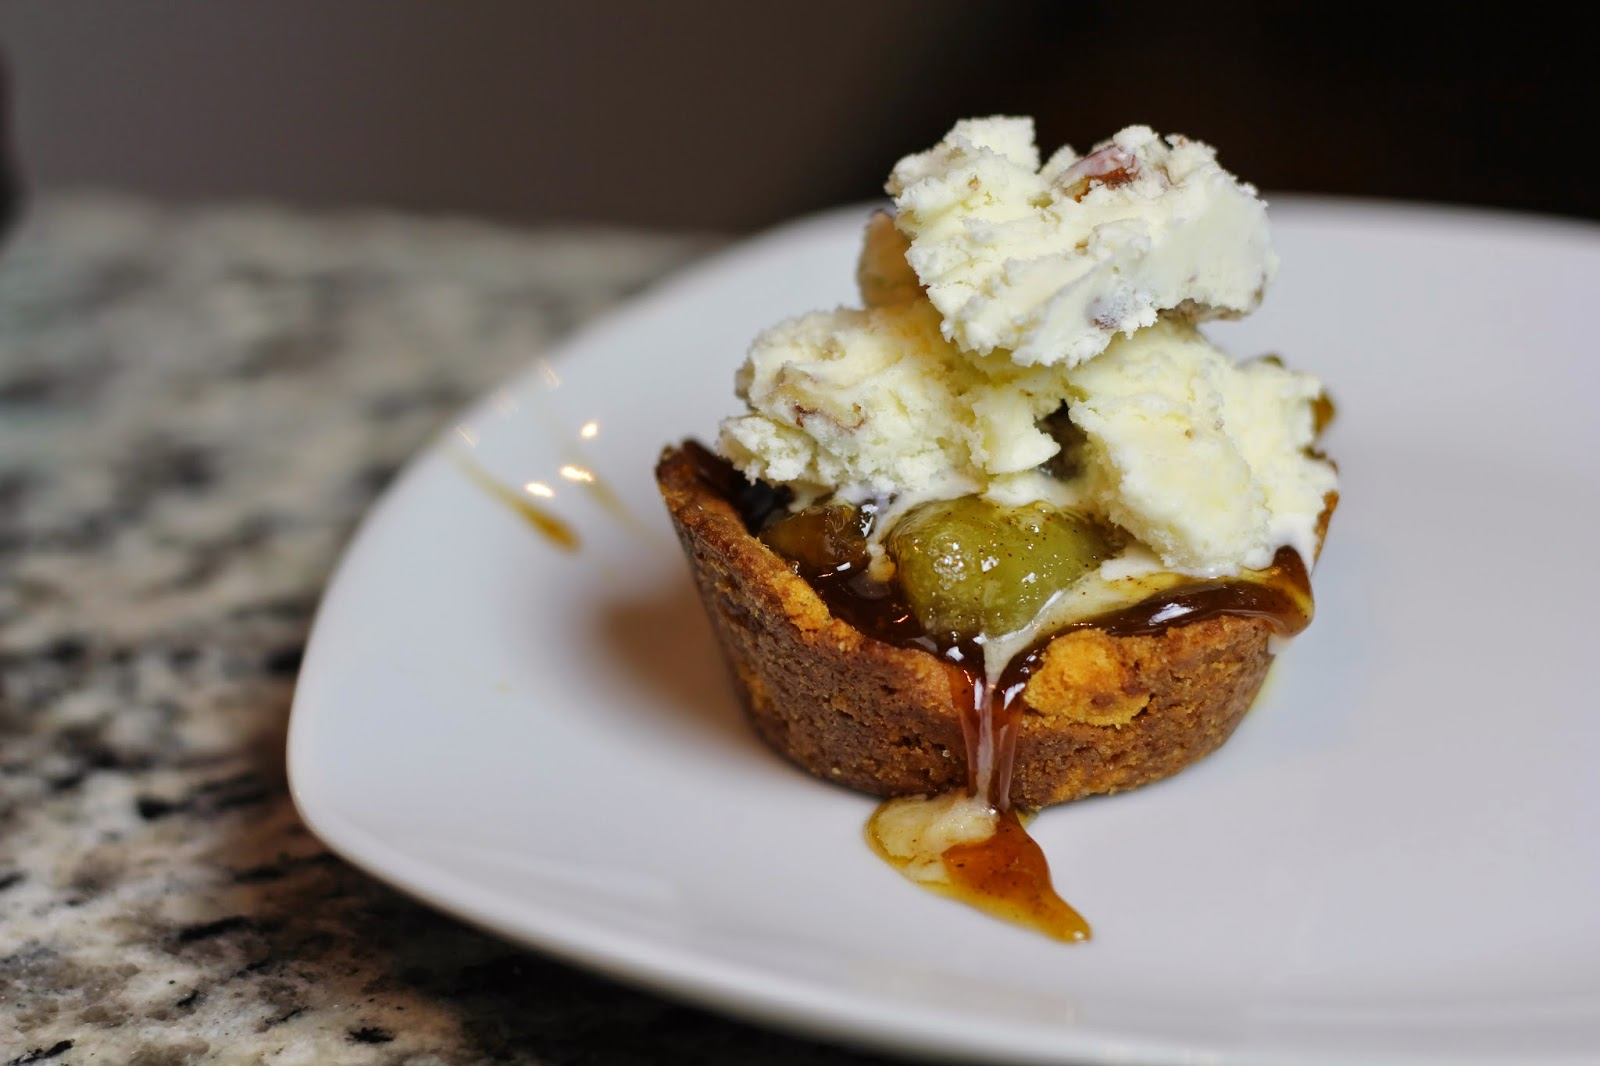 Guest Blog Post: Fried Apple with Nilla Wafer Tart